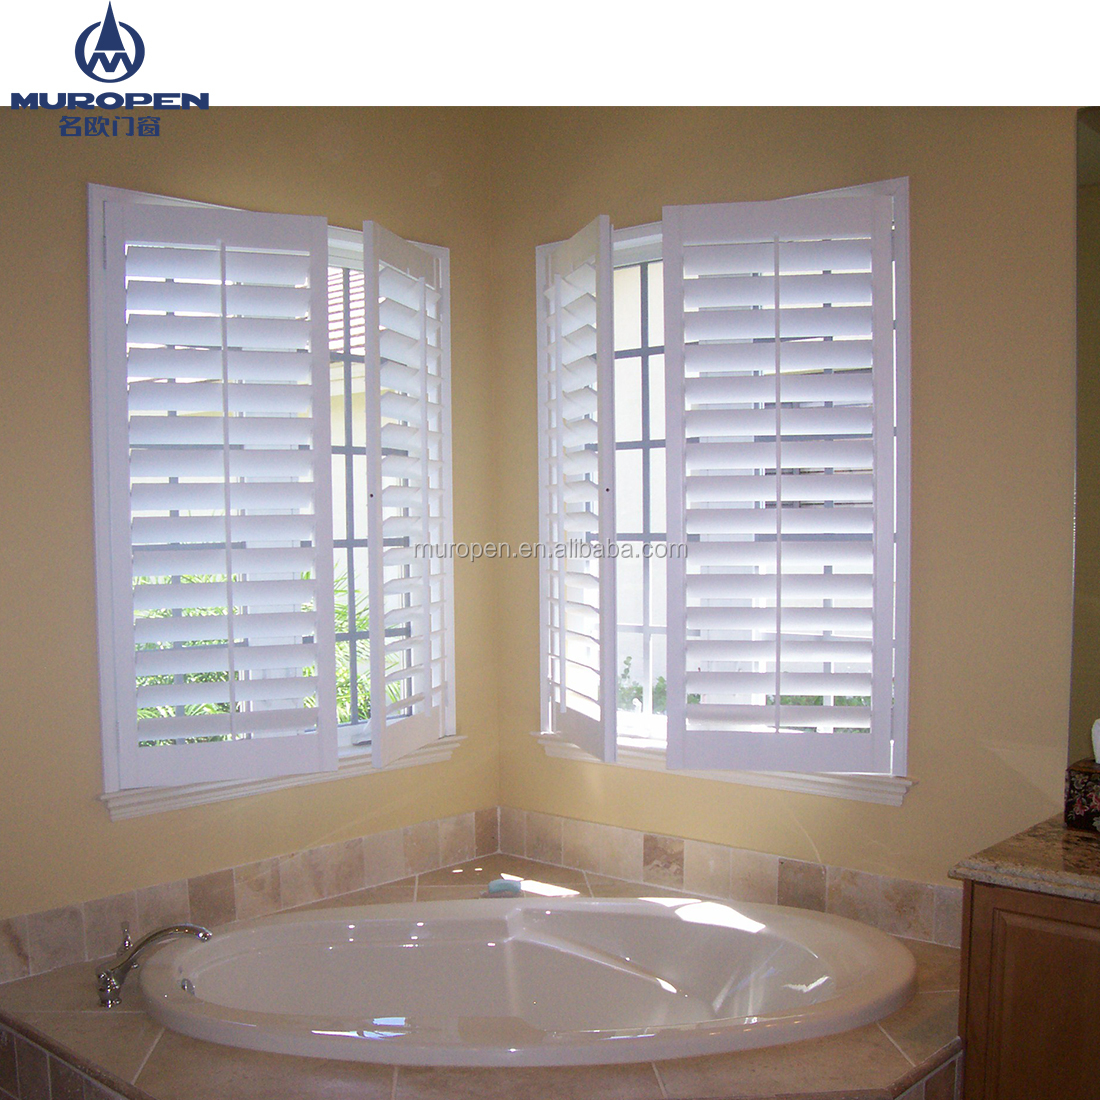 Aluminum Casement Malaysia Window With Grill Design And Mosquito Net Inside Automatic Blinds Shutters Louver Buy Blinds In Double Glass Double Glass